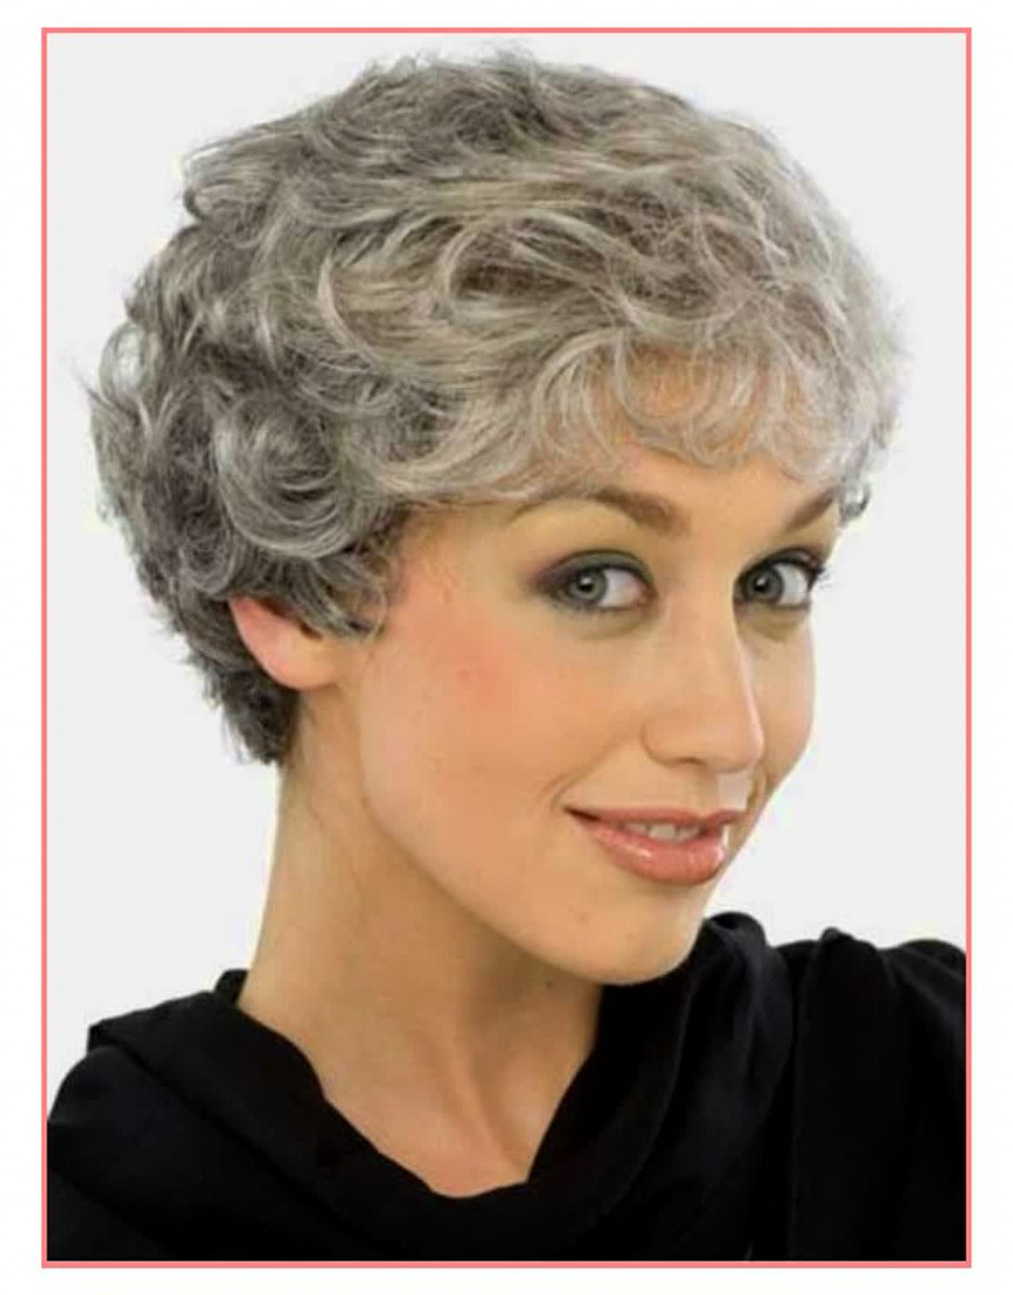 Haircuts For Curly Grey Hair | Hairstyles And Haircuts Ideas For Regarding Curly Grayhairstyles (View 10 of 20)